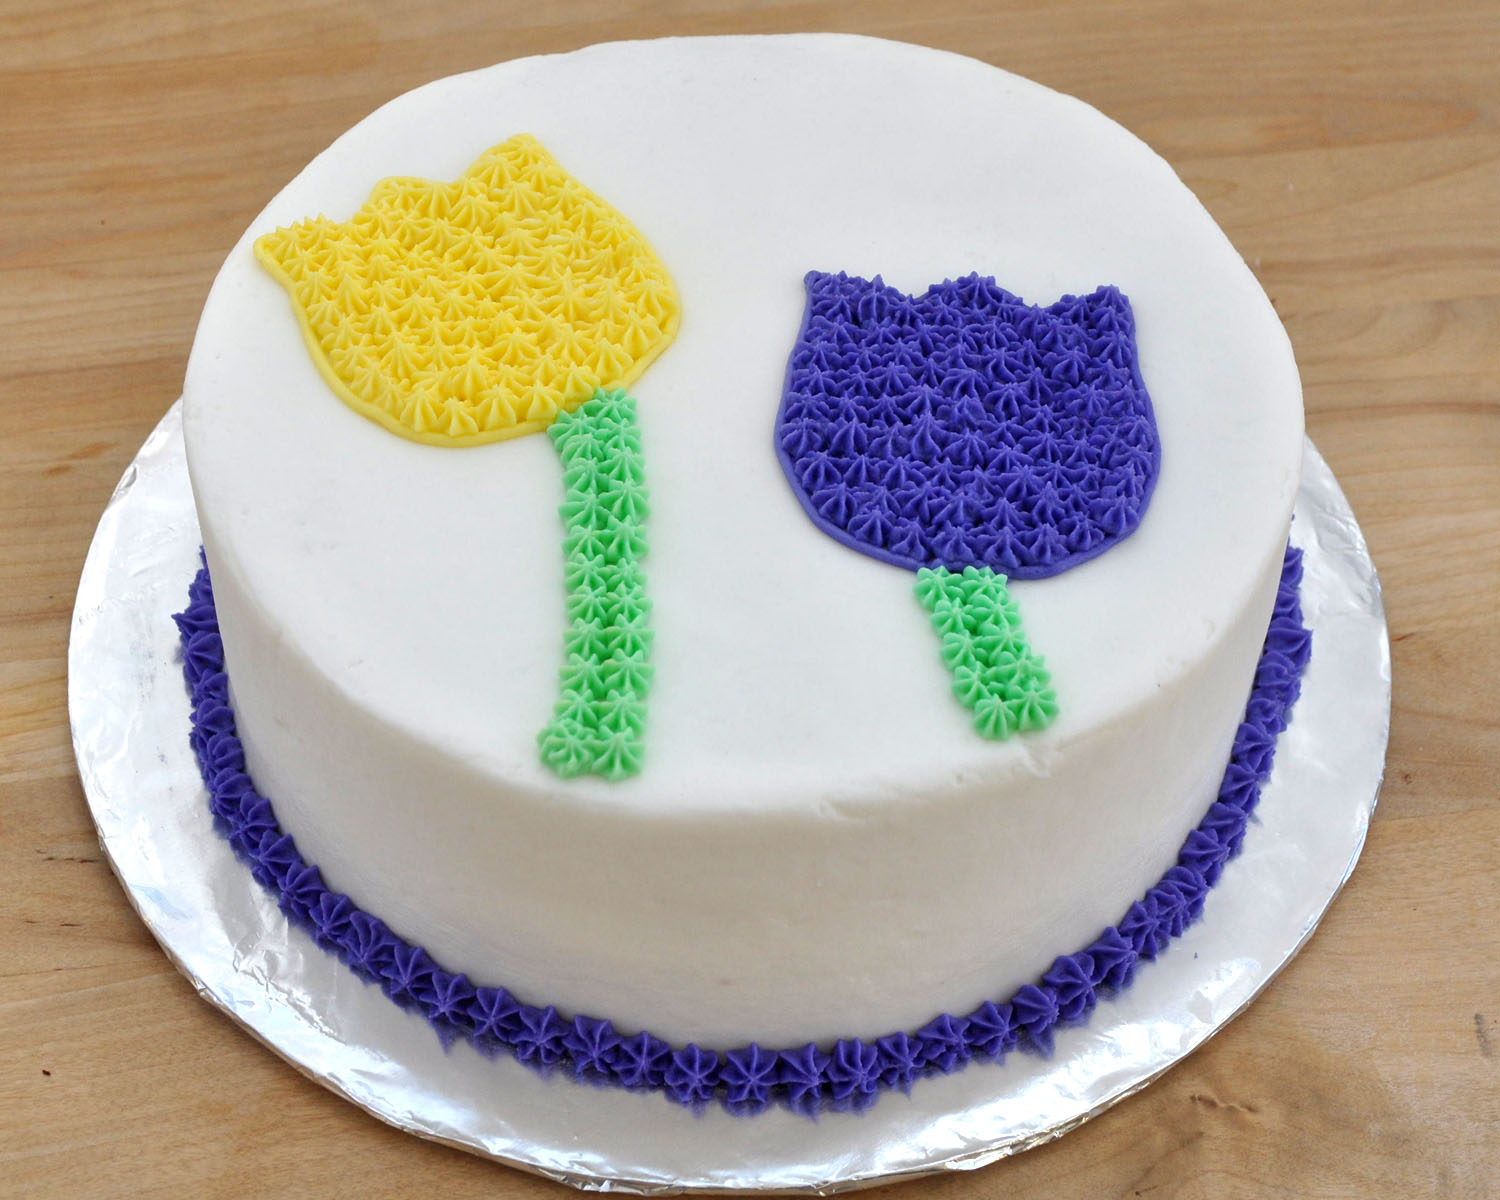 Cake Designs Easy To Make : Beki Cook s Cake Blog: Cake Decorating 101 - Easy Birthday ...